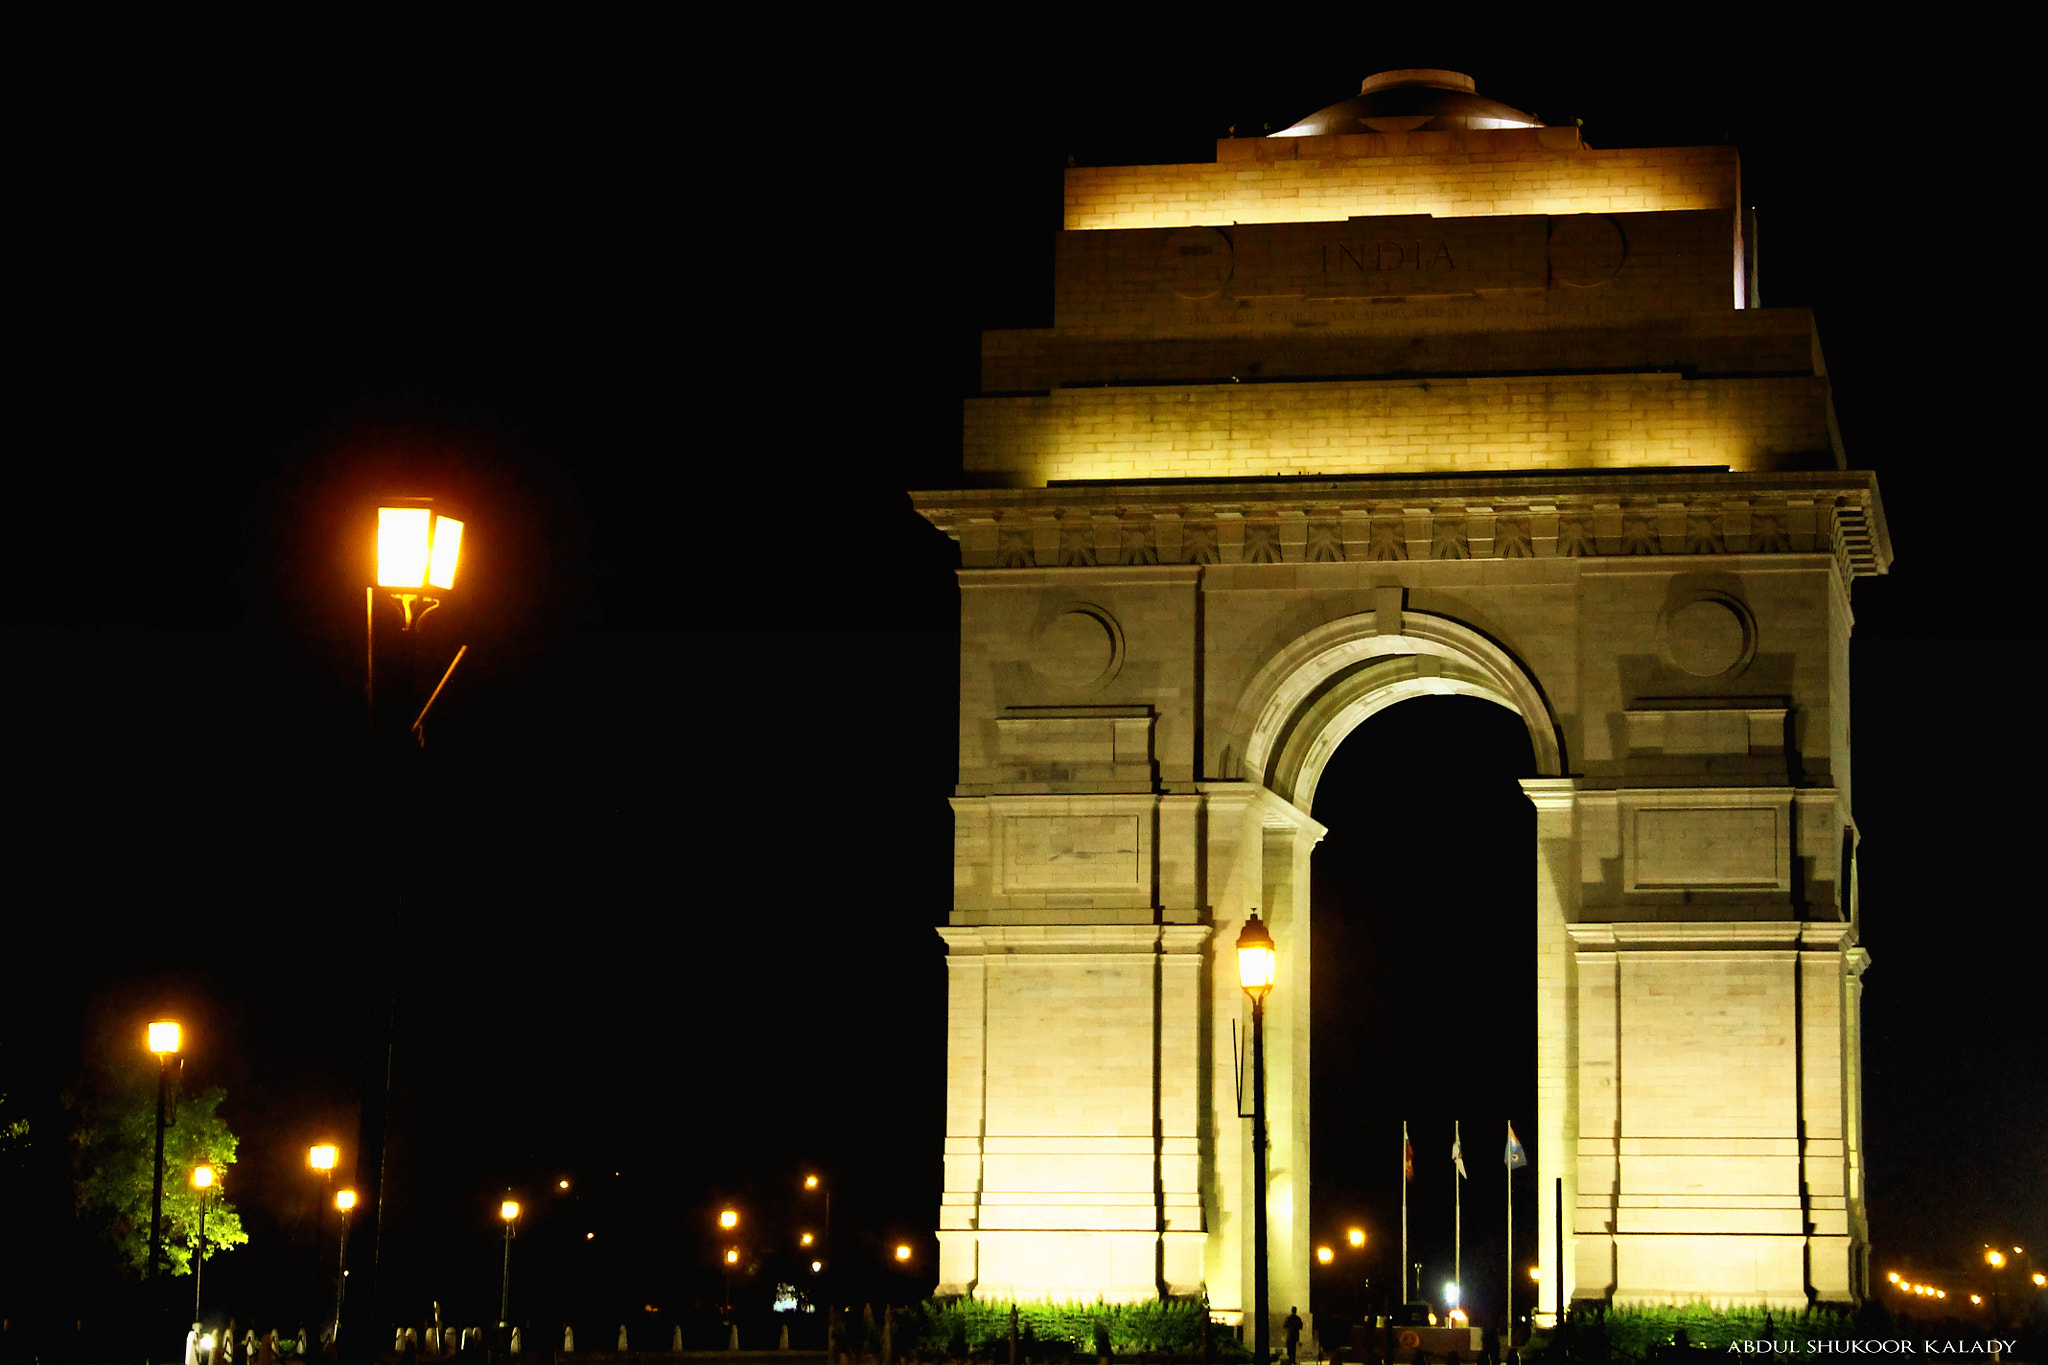 Photograph INDIA GATE by Abshu kalady on 500px